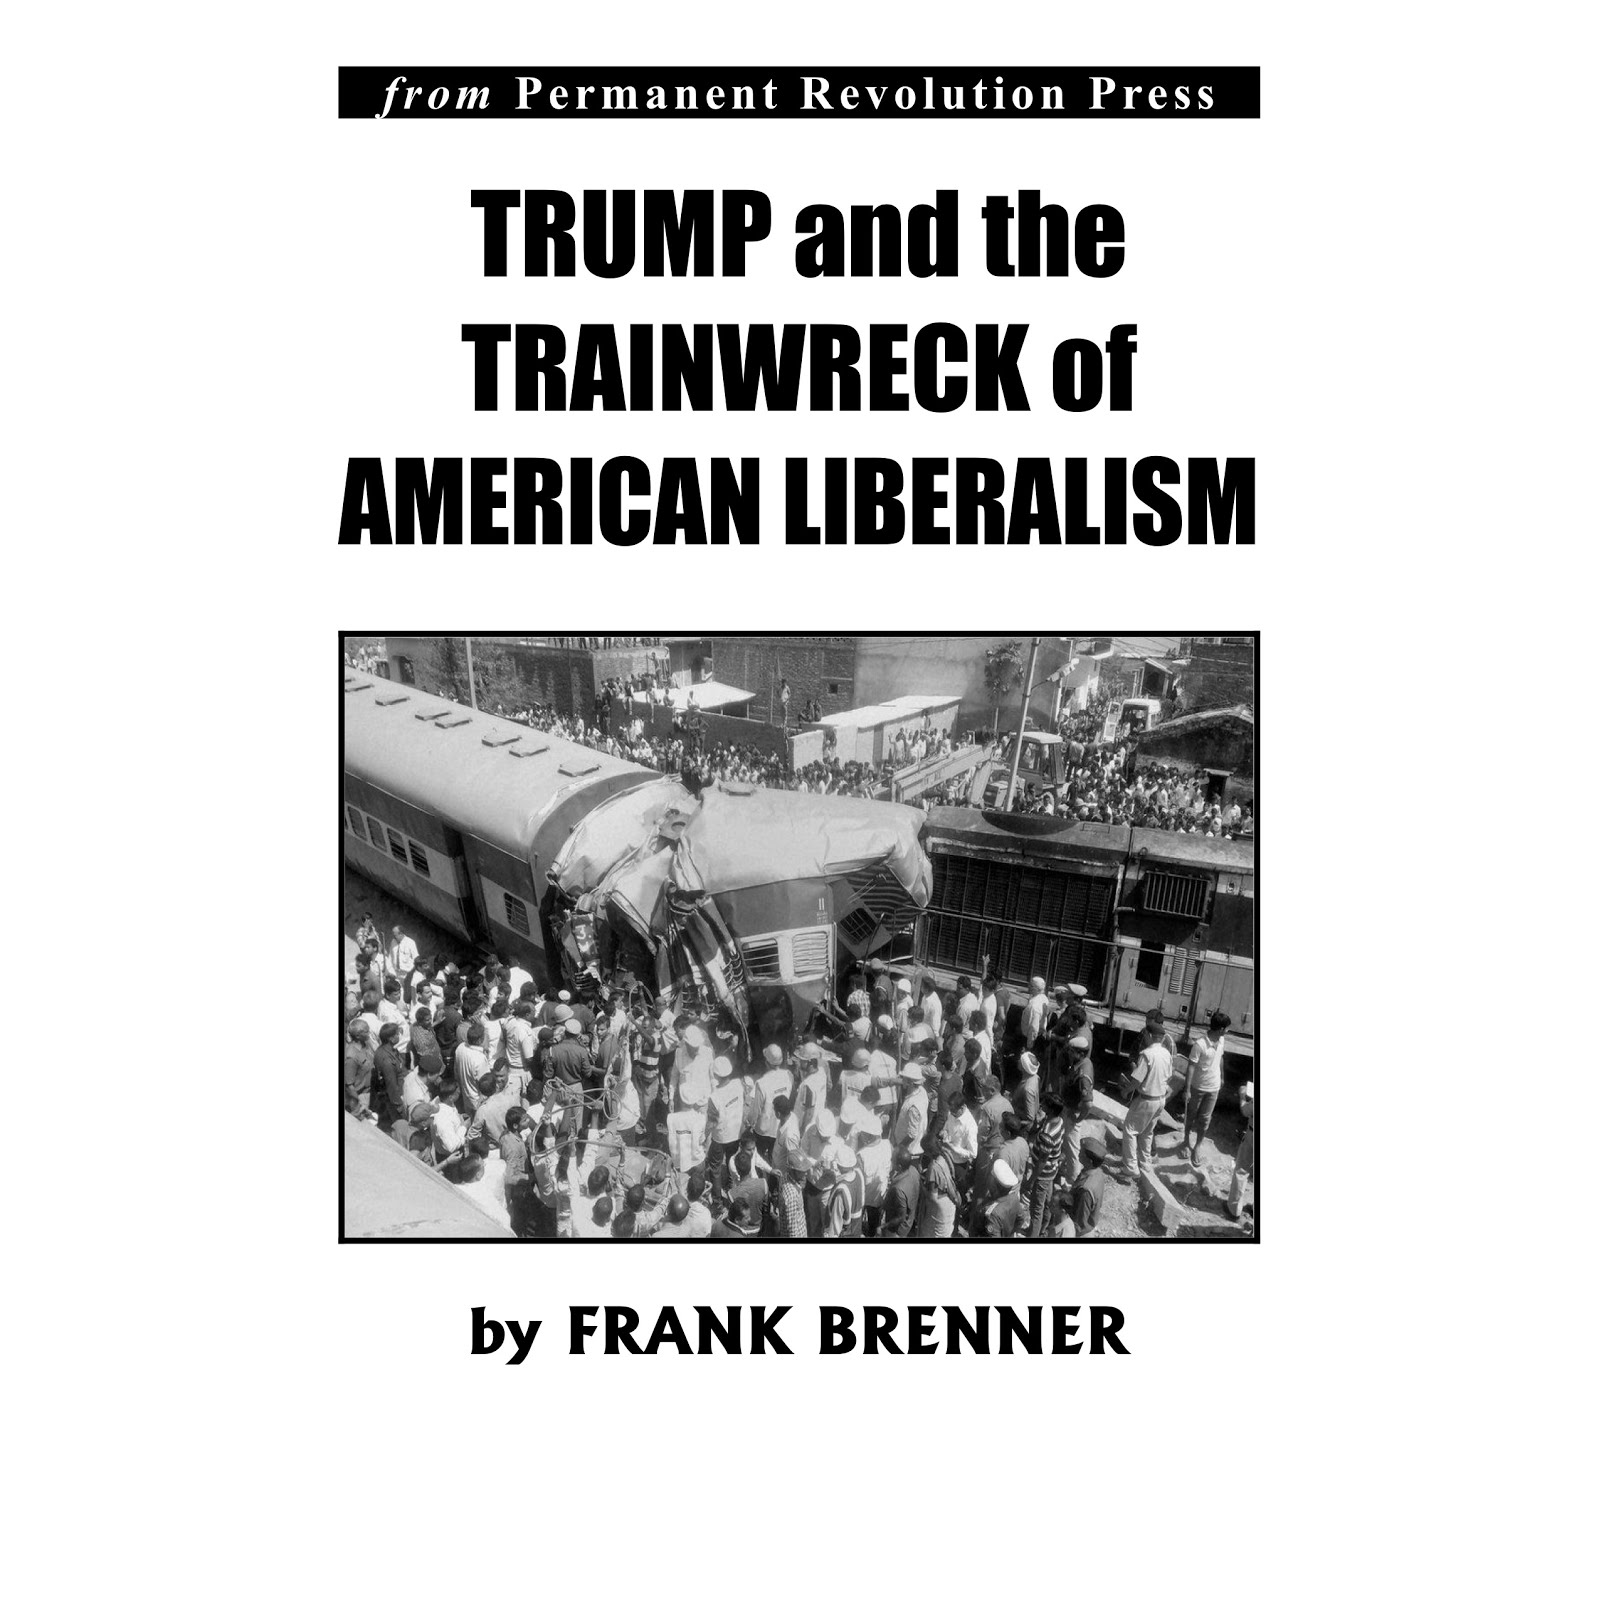 Trump and the train wreck of American liberalism